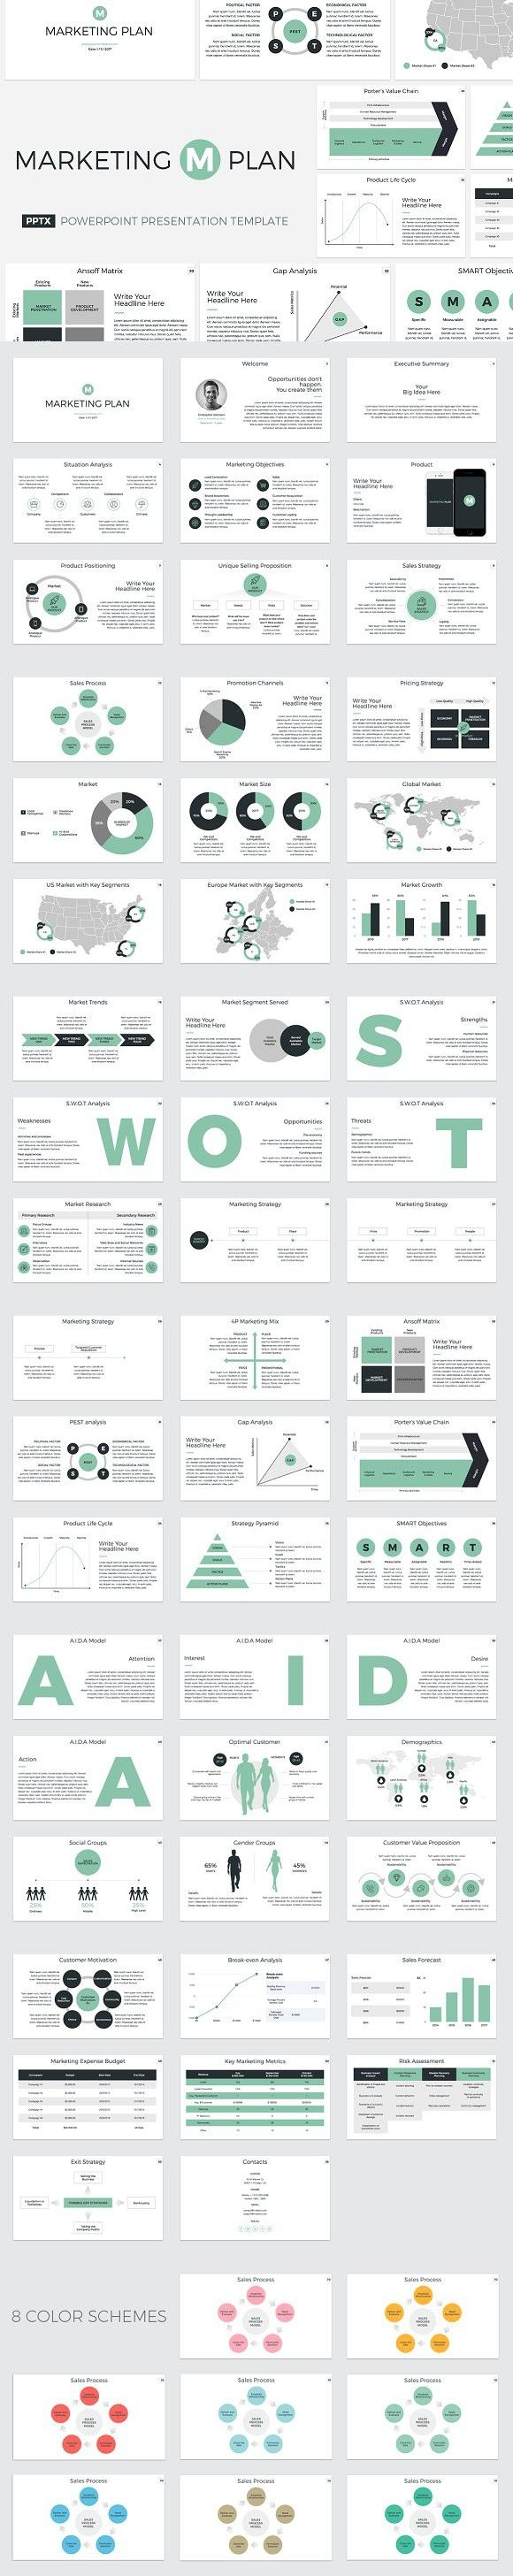 Marketing Plan PowerPoint Template. Presentation Templates